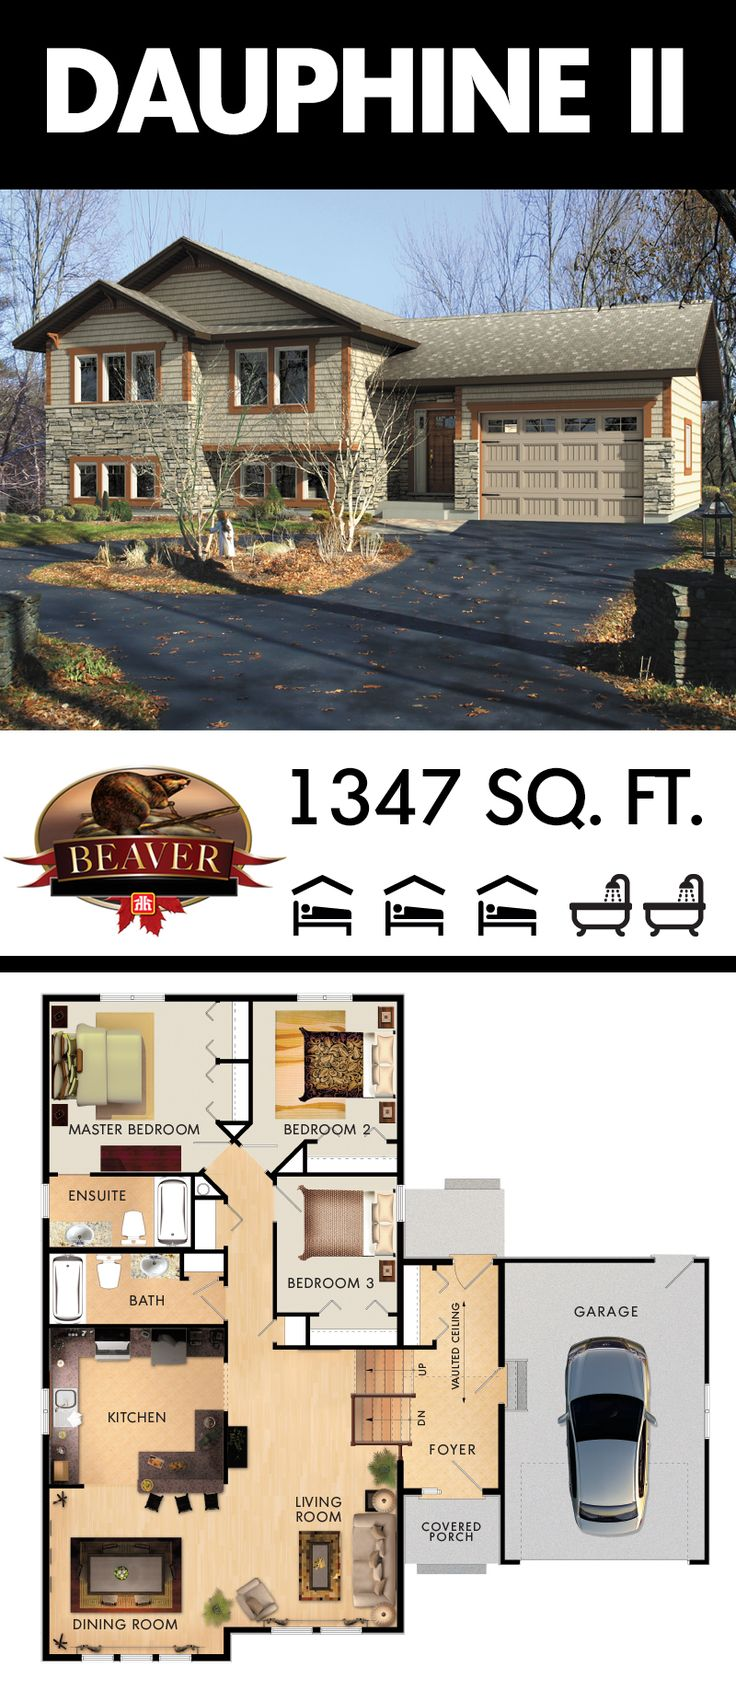 The split entry foyer and towering vaulted ceiling of the Dauphine II creates a reassuring first impression, and instantly gives you a comfortable, cozy feeling. Bonus: it is also a perfect home for giving a growing #family the space it needs. #BeaverHomesAndCottages